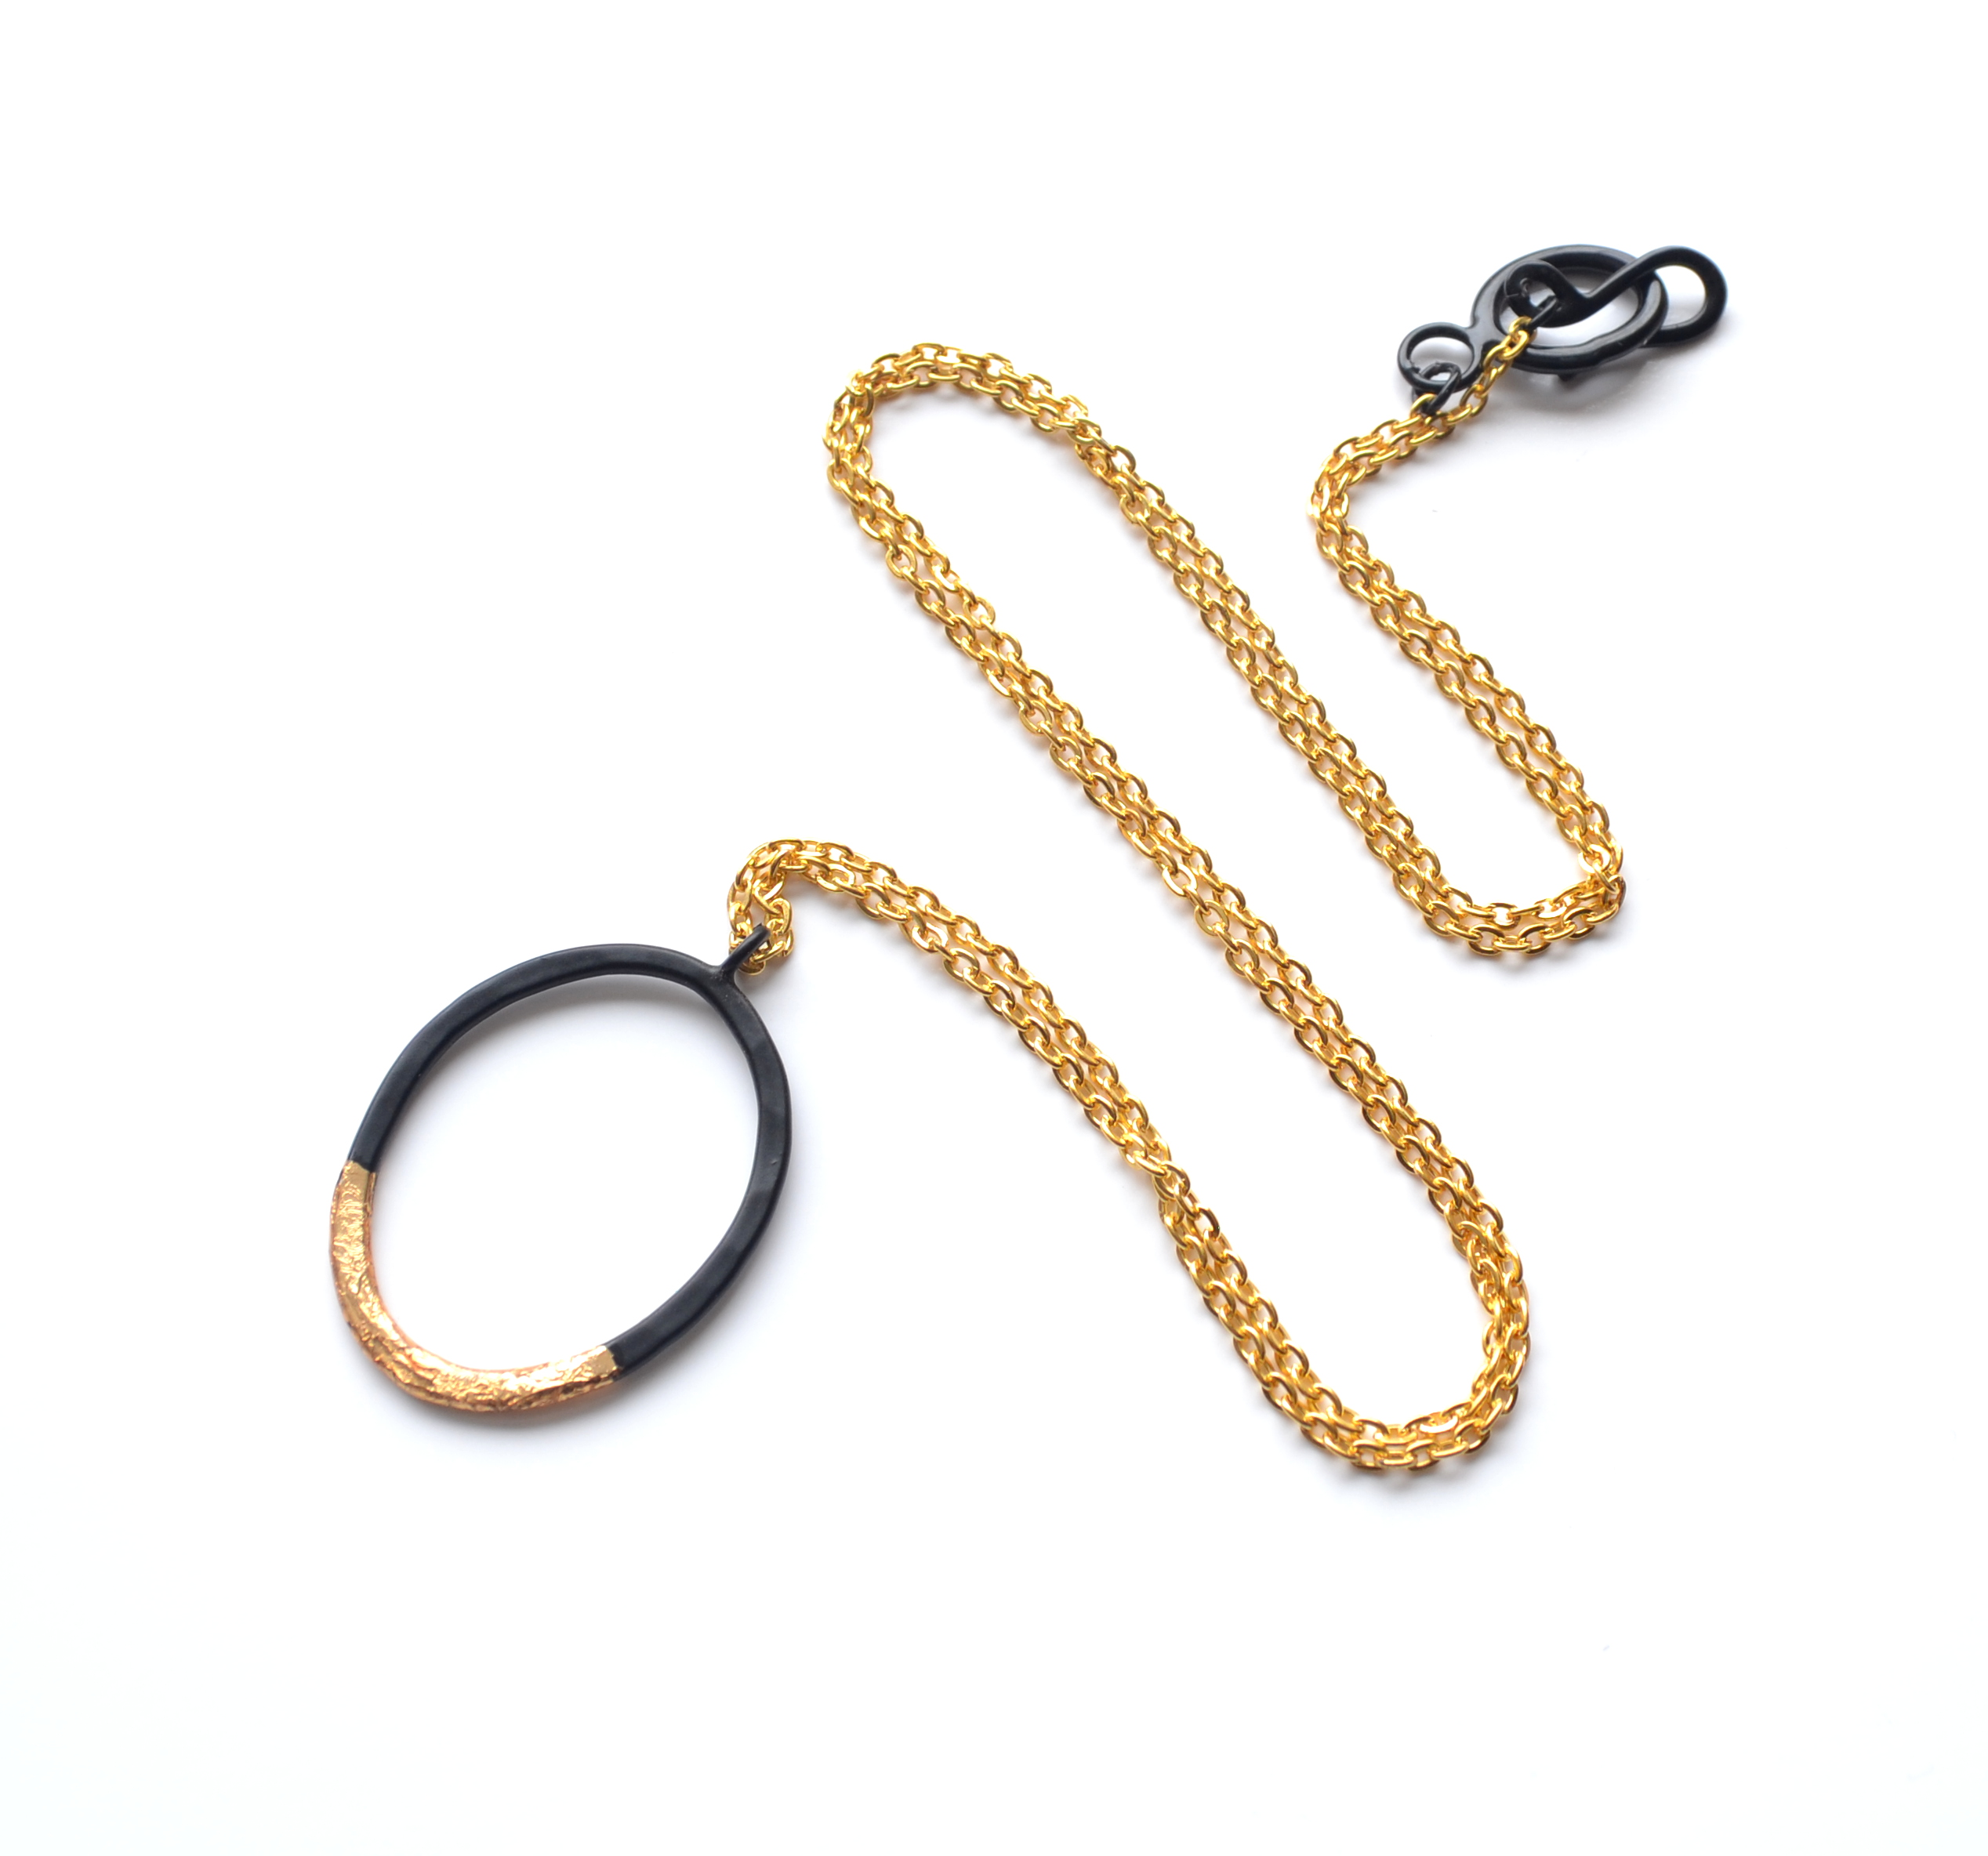 wu serein rings handmade chain